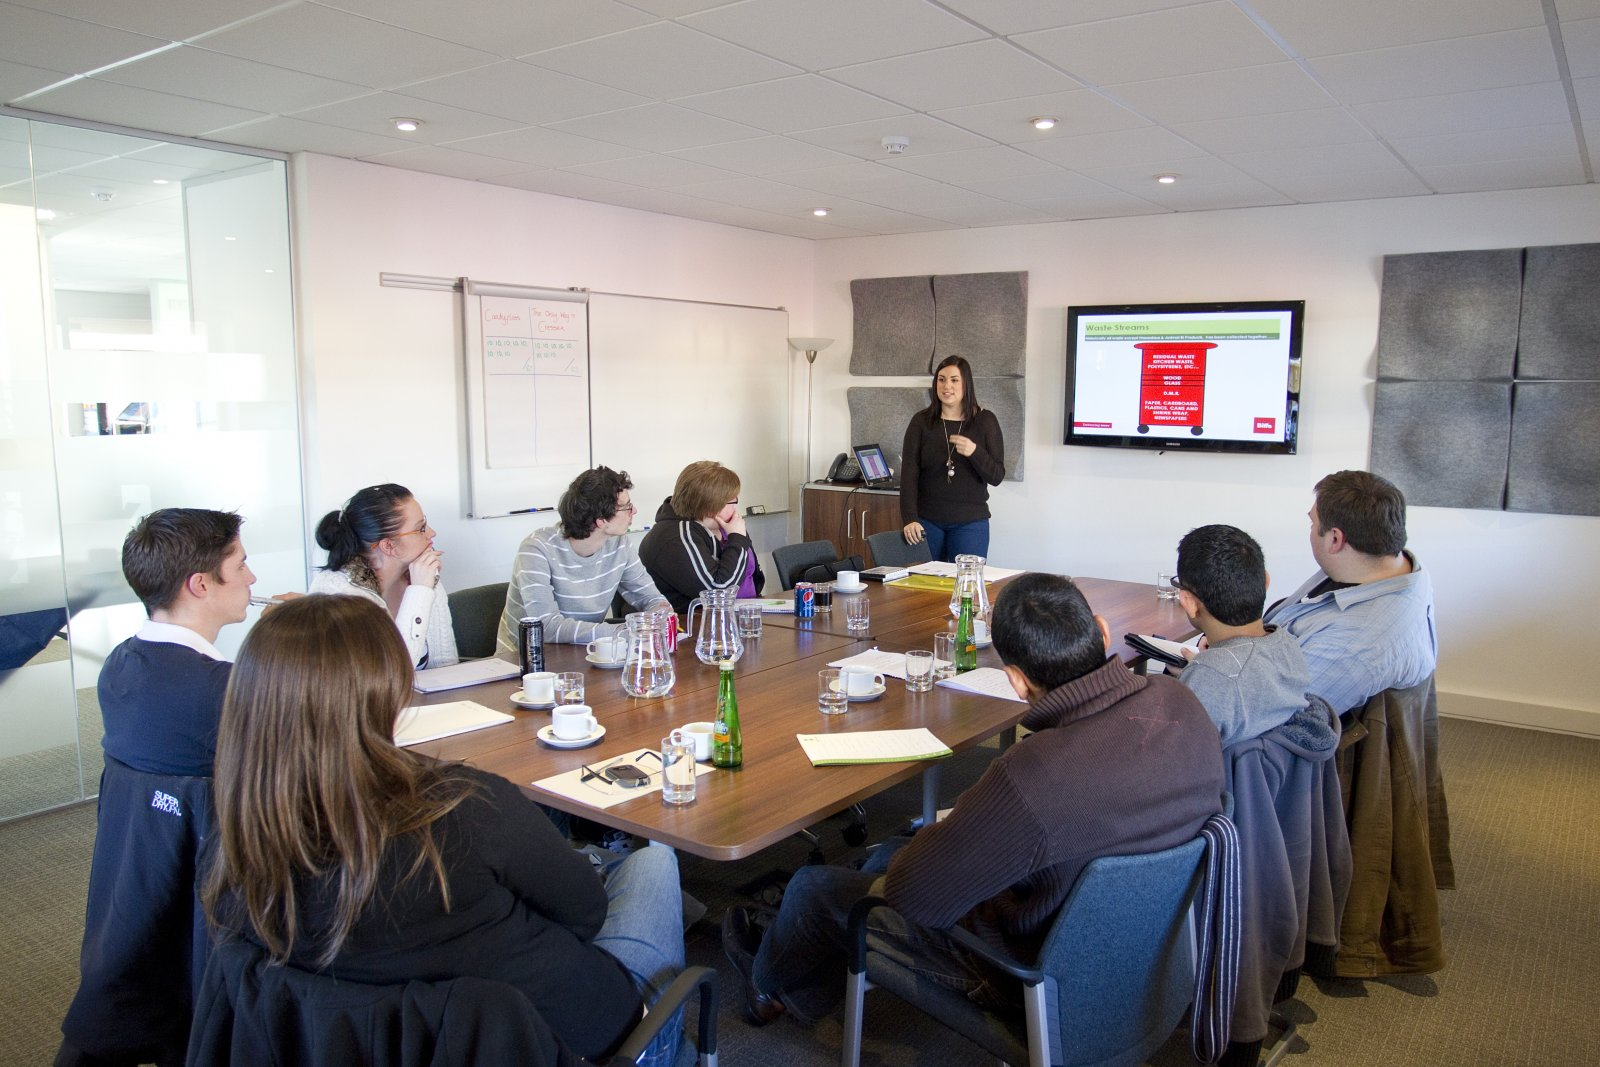 Serviced Meeting Rooms UK Online Booking at 30 Centres